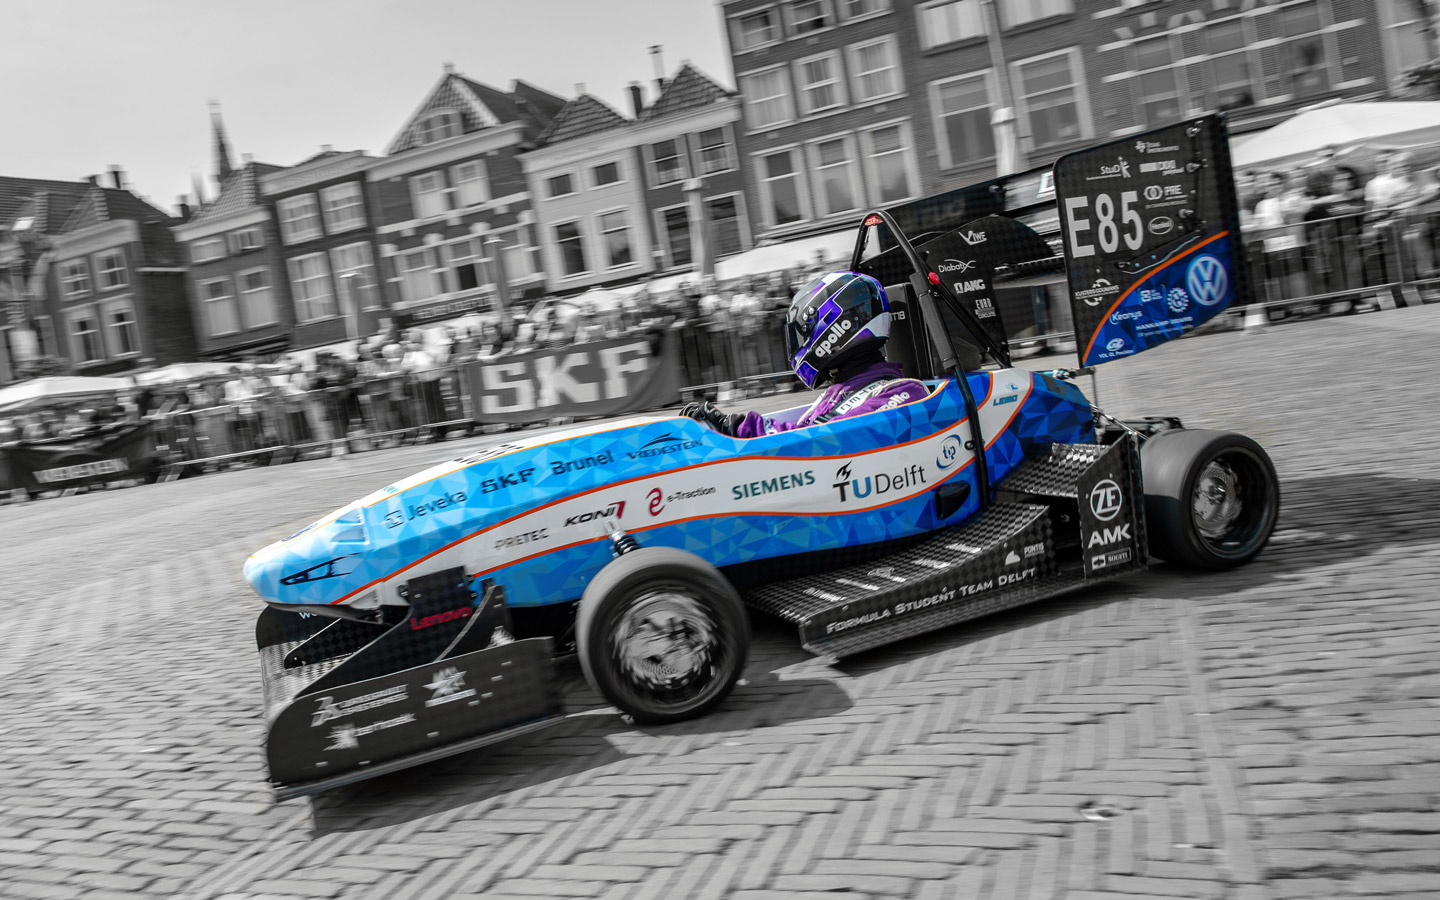 Image of a Formula Student Team Delft racing car